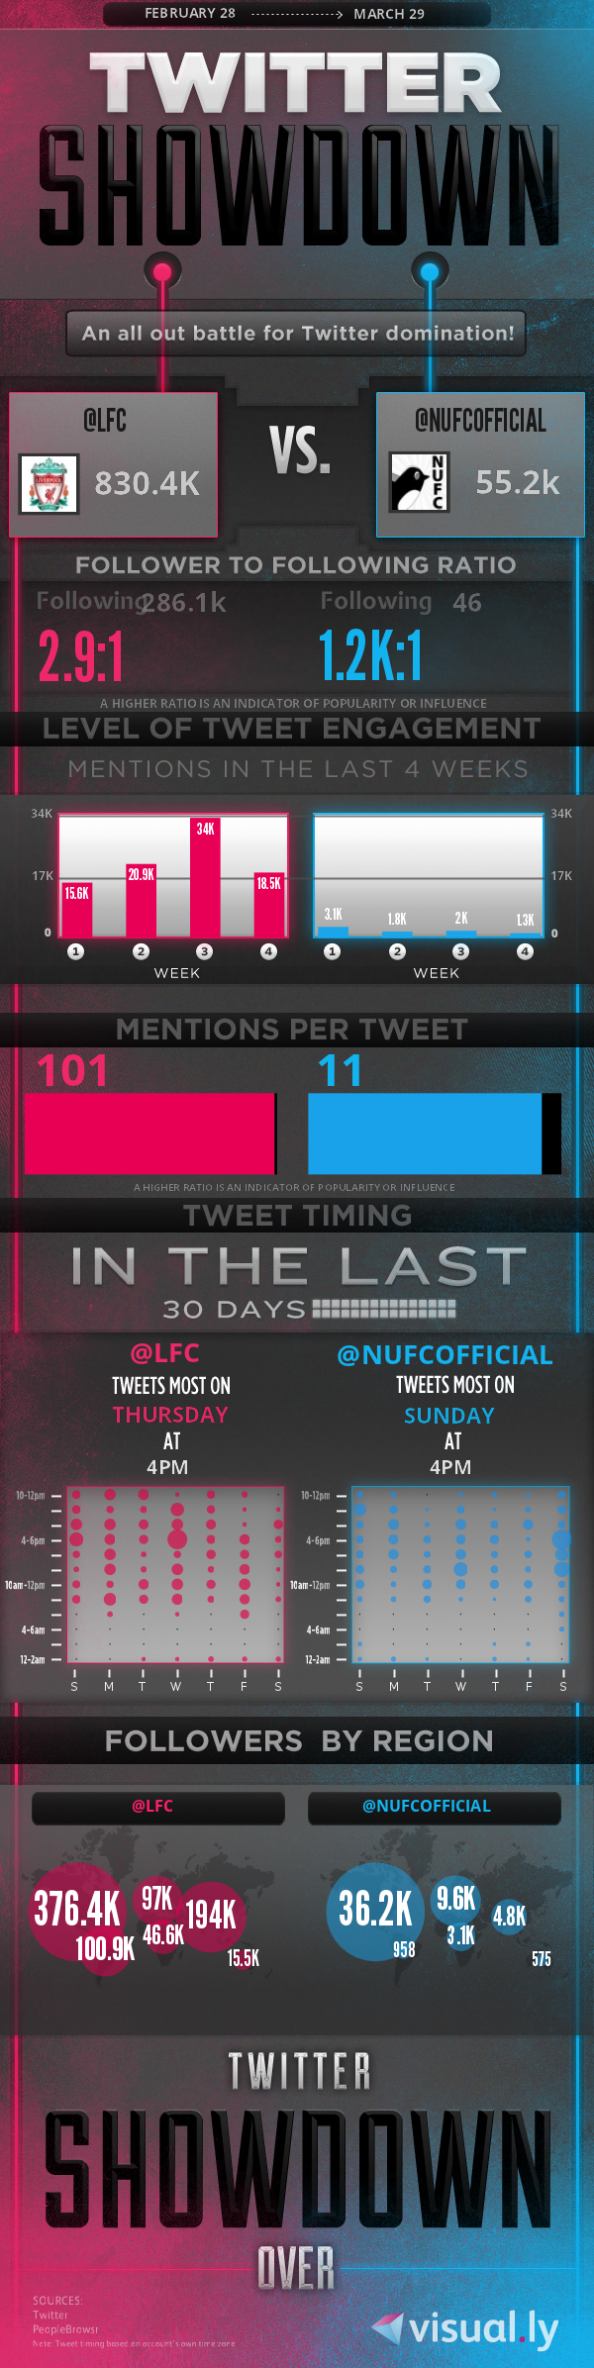 Twitter Showdown e1333095694194 Newcastle vs Liverpool   Twitter Showdown and Preview